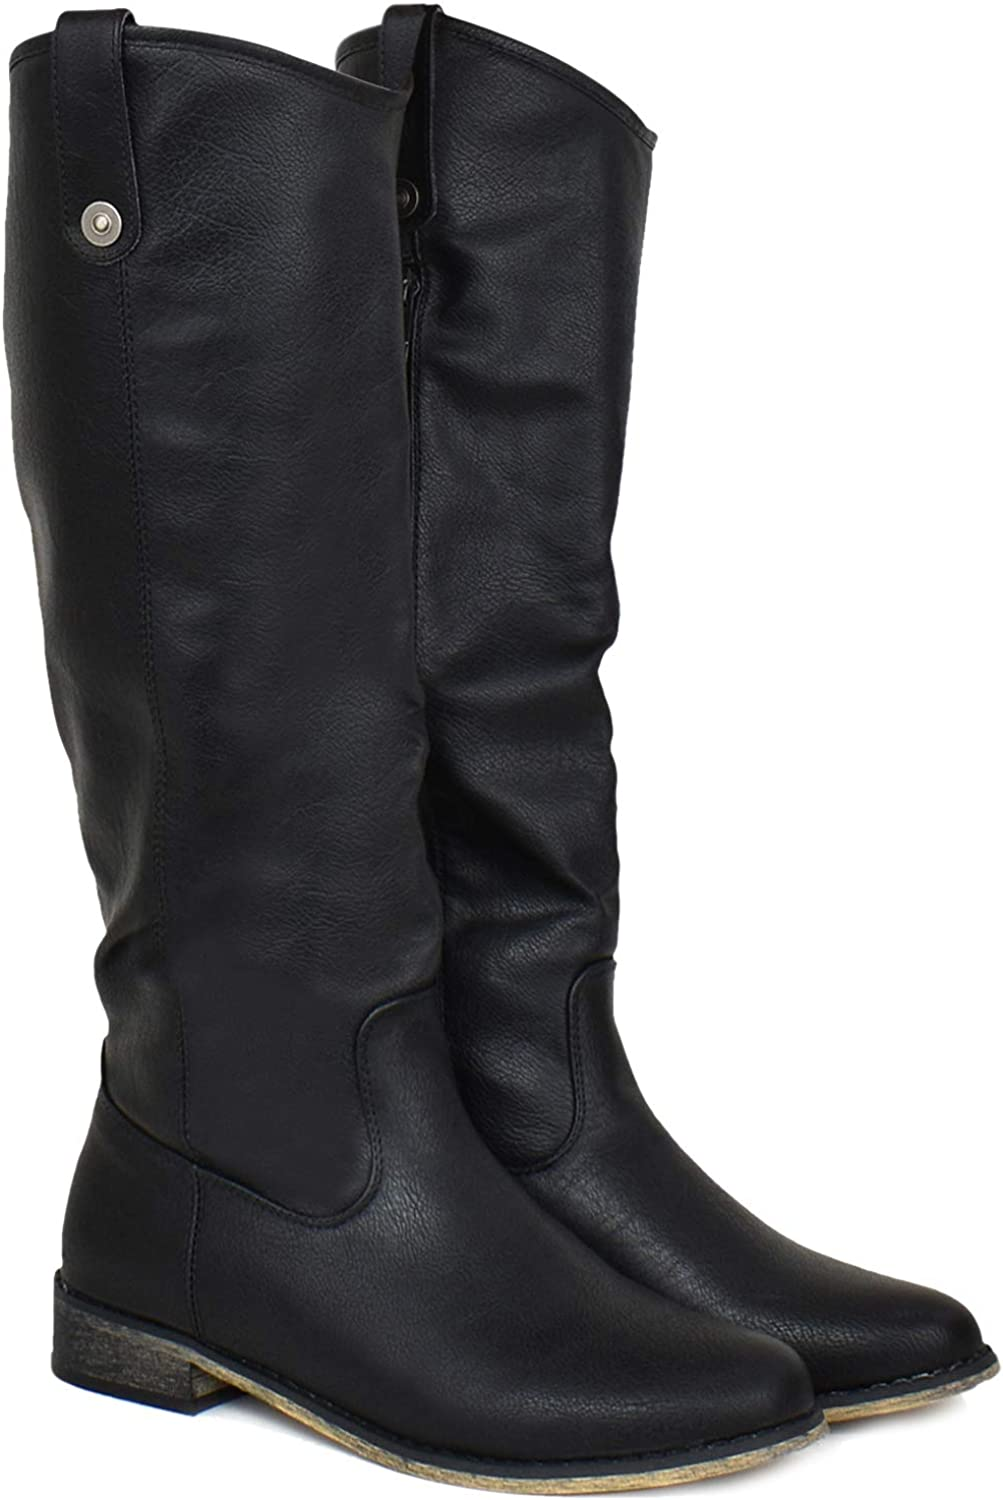 Premier Standard - Strappy Buckle Elastic Panel Knee High Riding Boot - Pull-Tab Sexy Comfortable Walking Boots